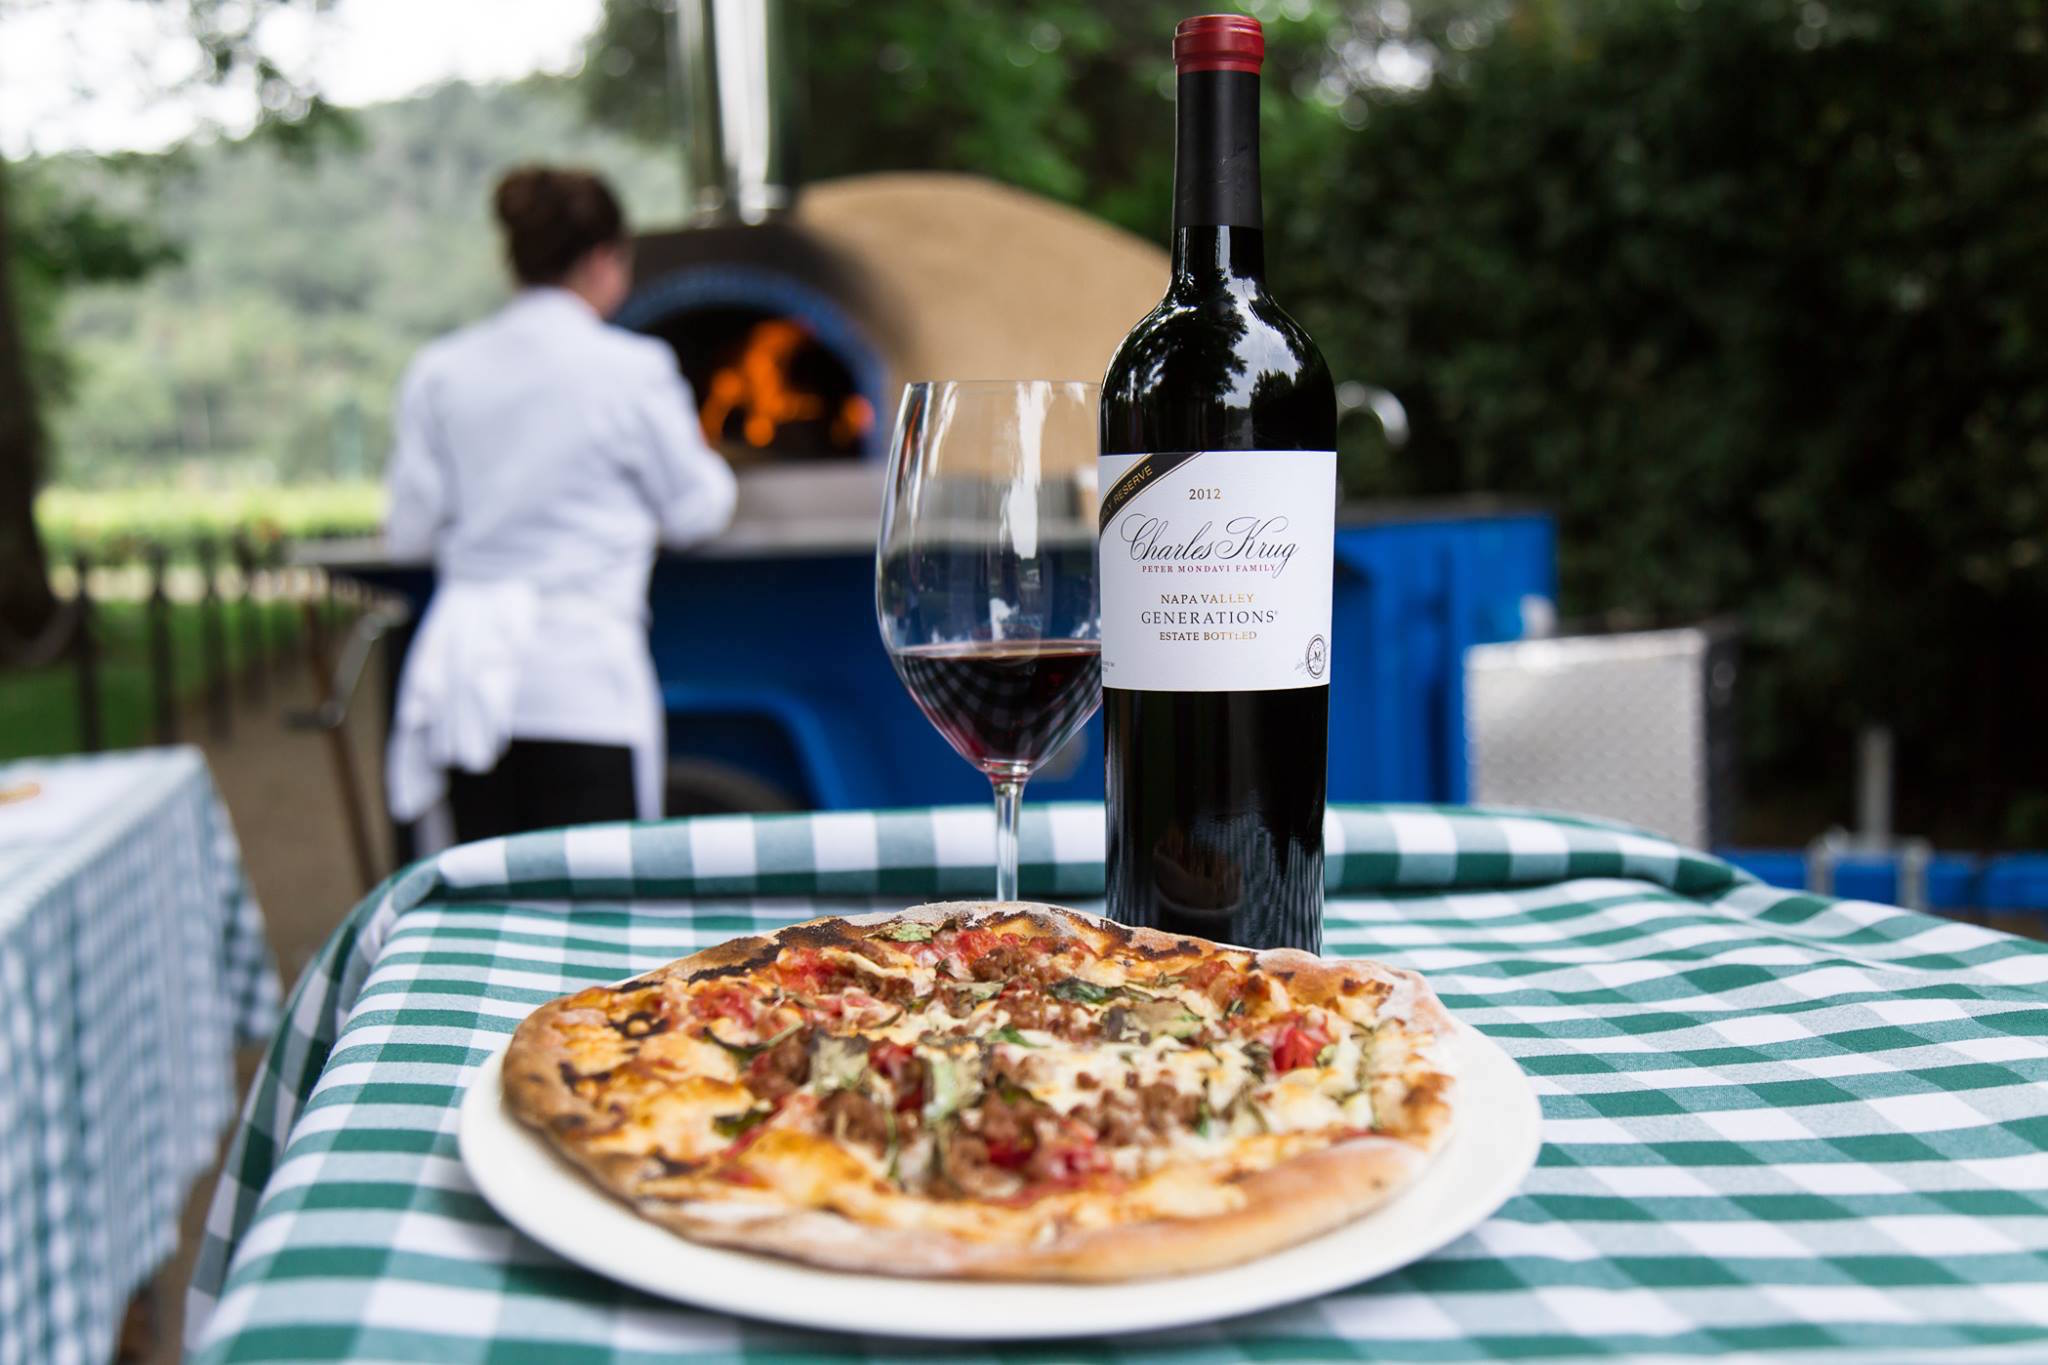 Pizza and red wine are on the menu at Charles Krug's harvest party